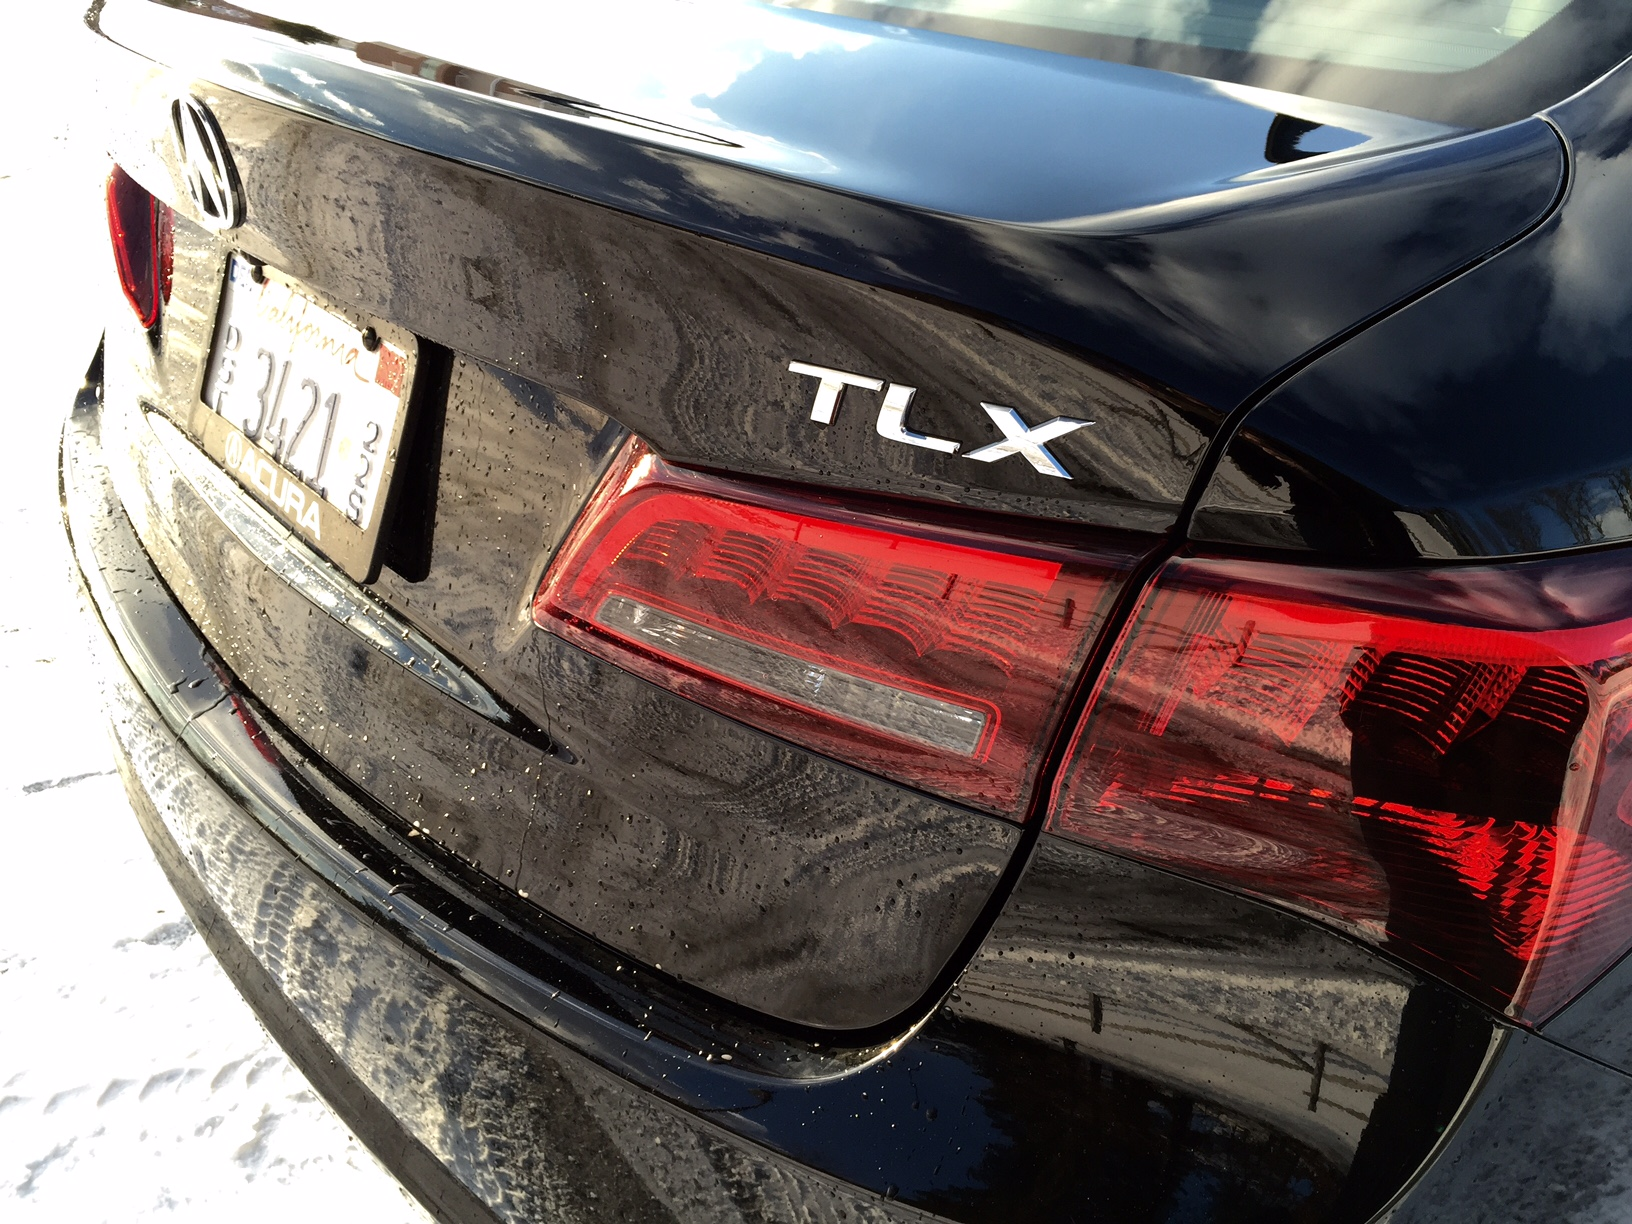 2015 Acura TLX Badge